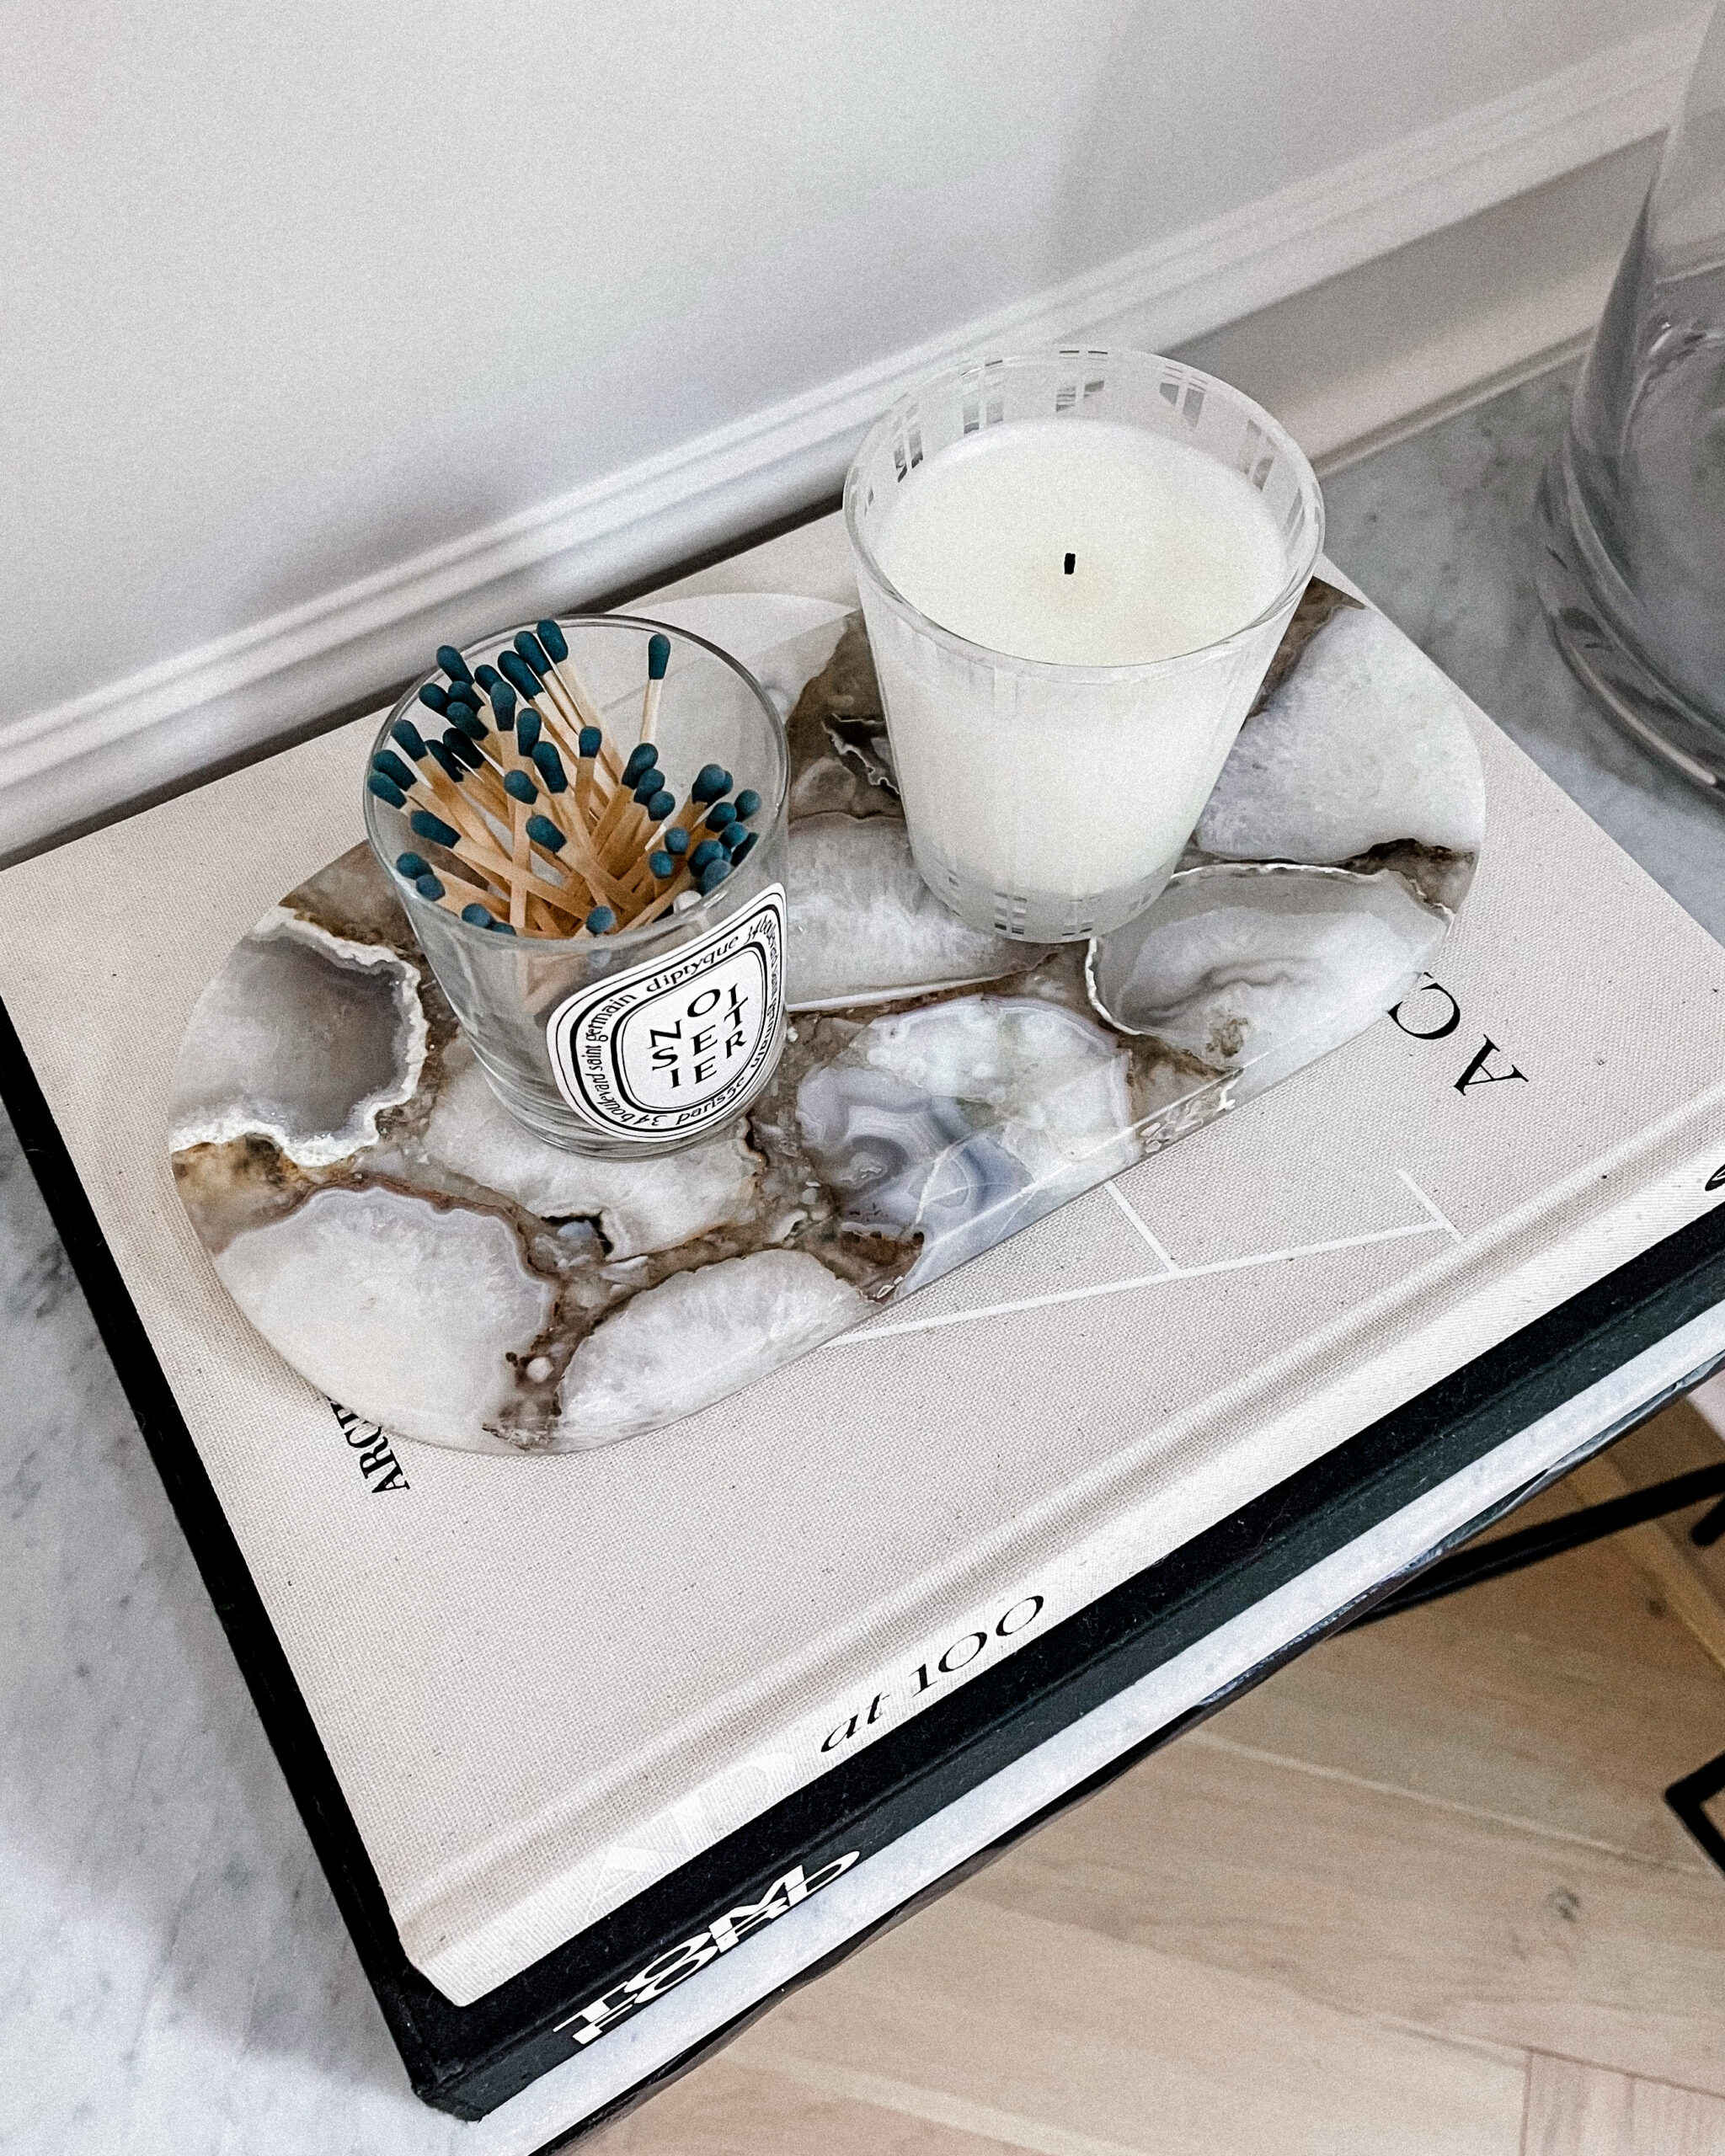 Fashion Jackson Coffee Table Books Diptyque Candle Marble Entry Table